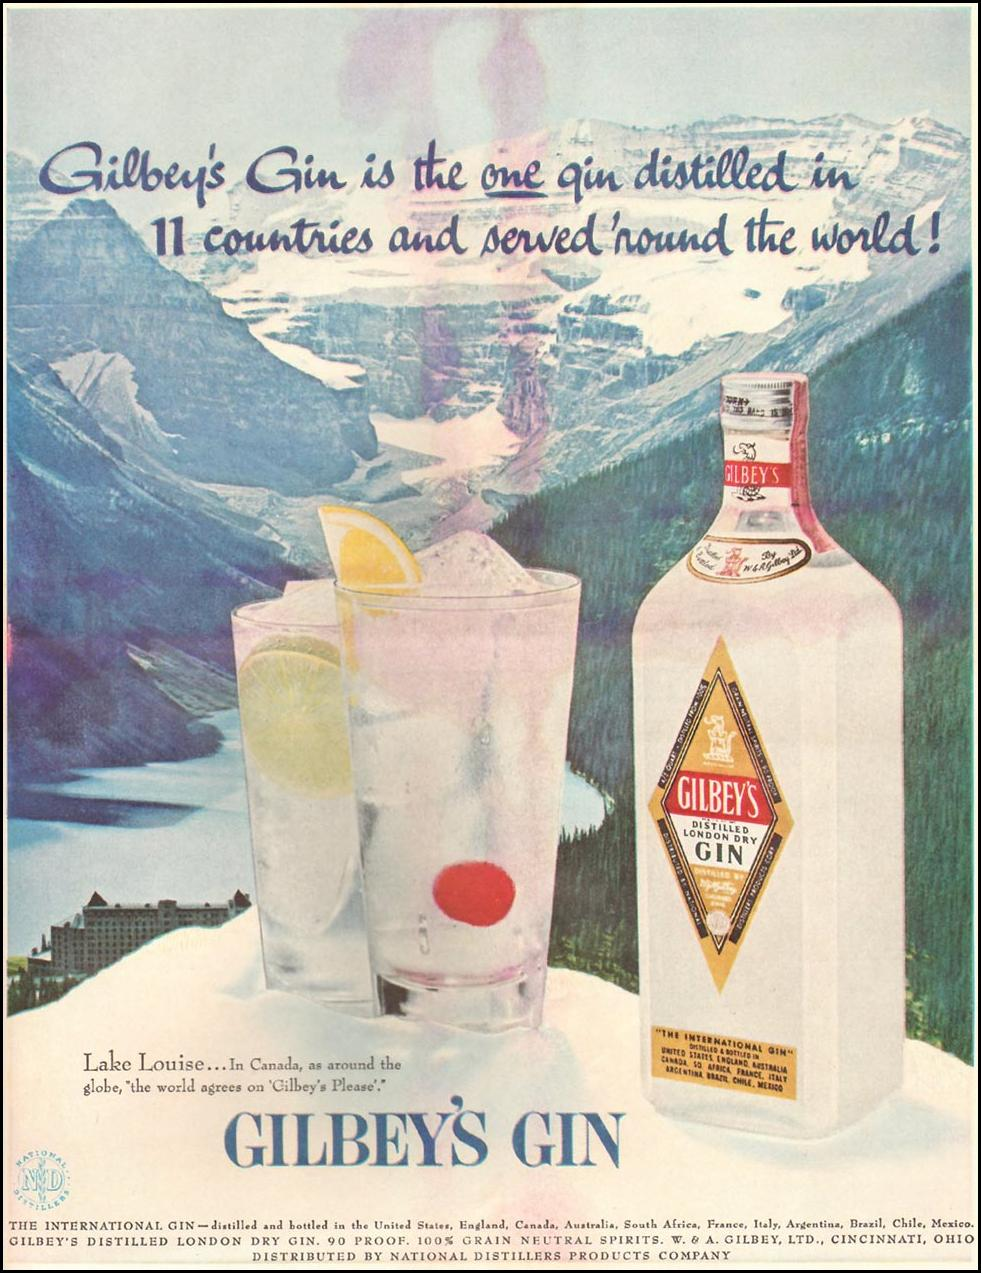 GILBEY'S GIN LIFE 06/24/1957 INSIDE BACK